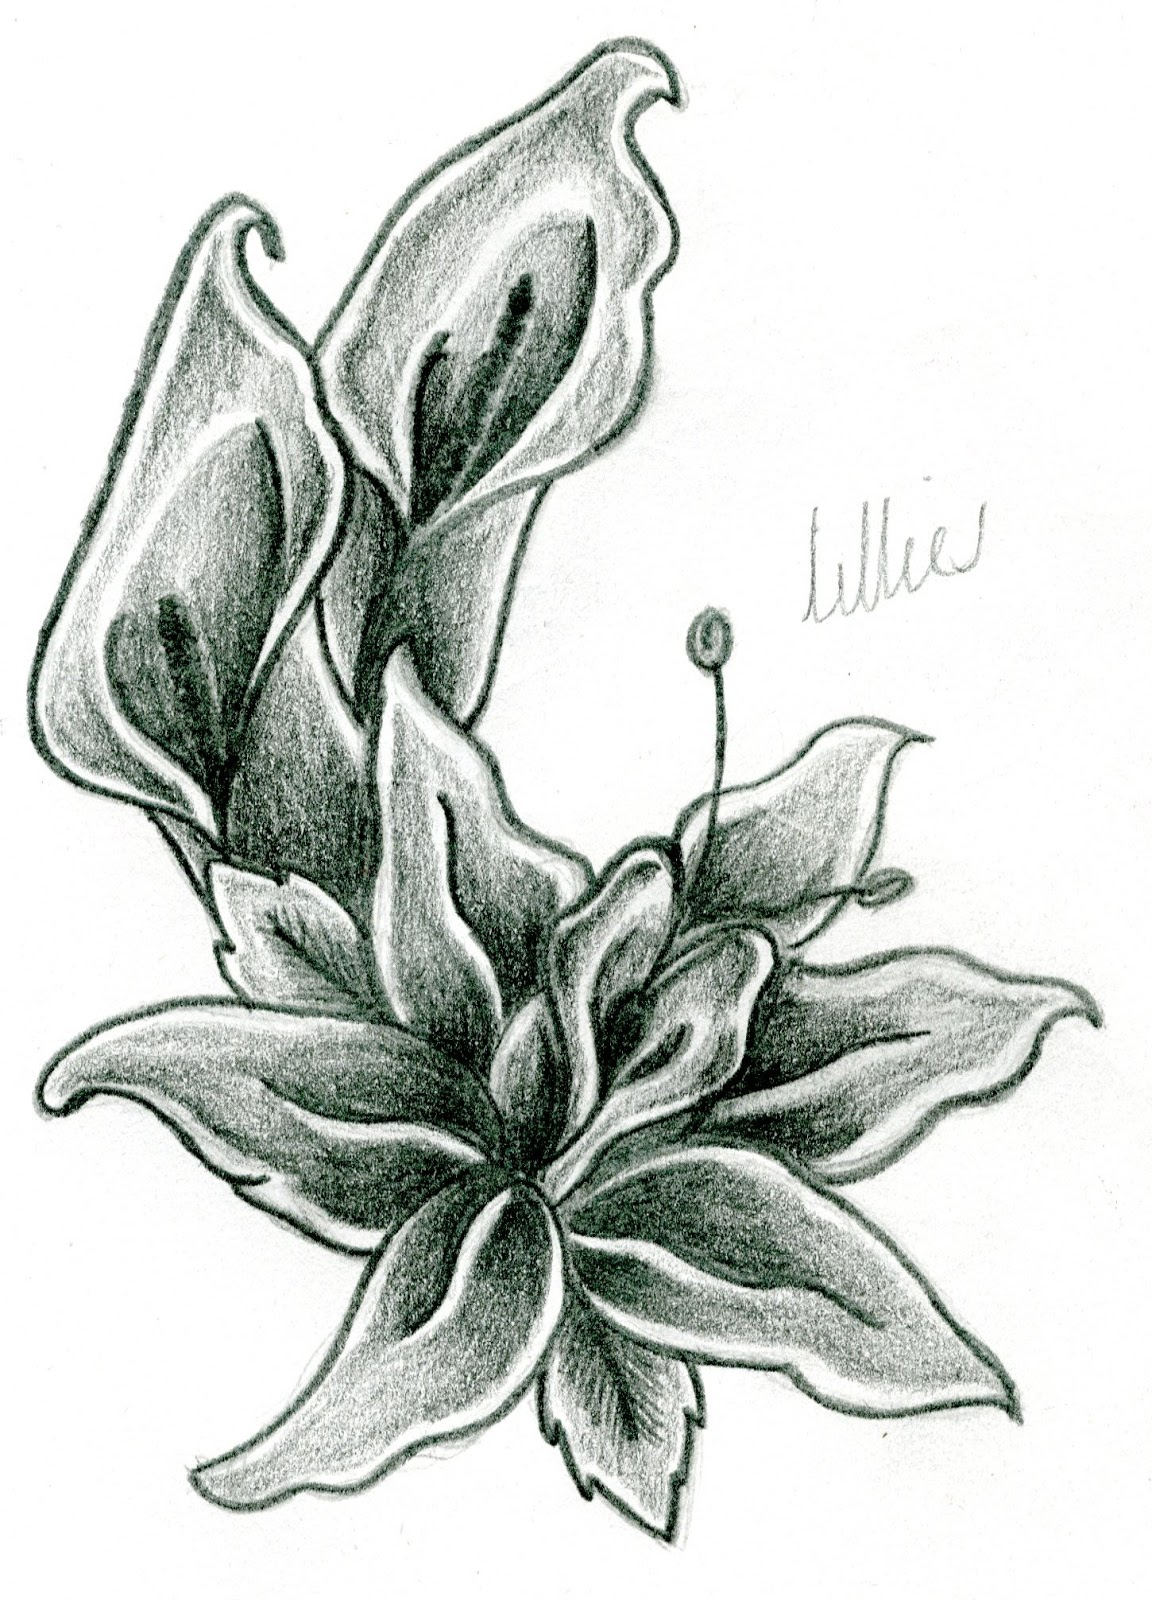 Gallery For gt Pencil Shading Flowers